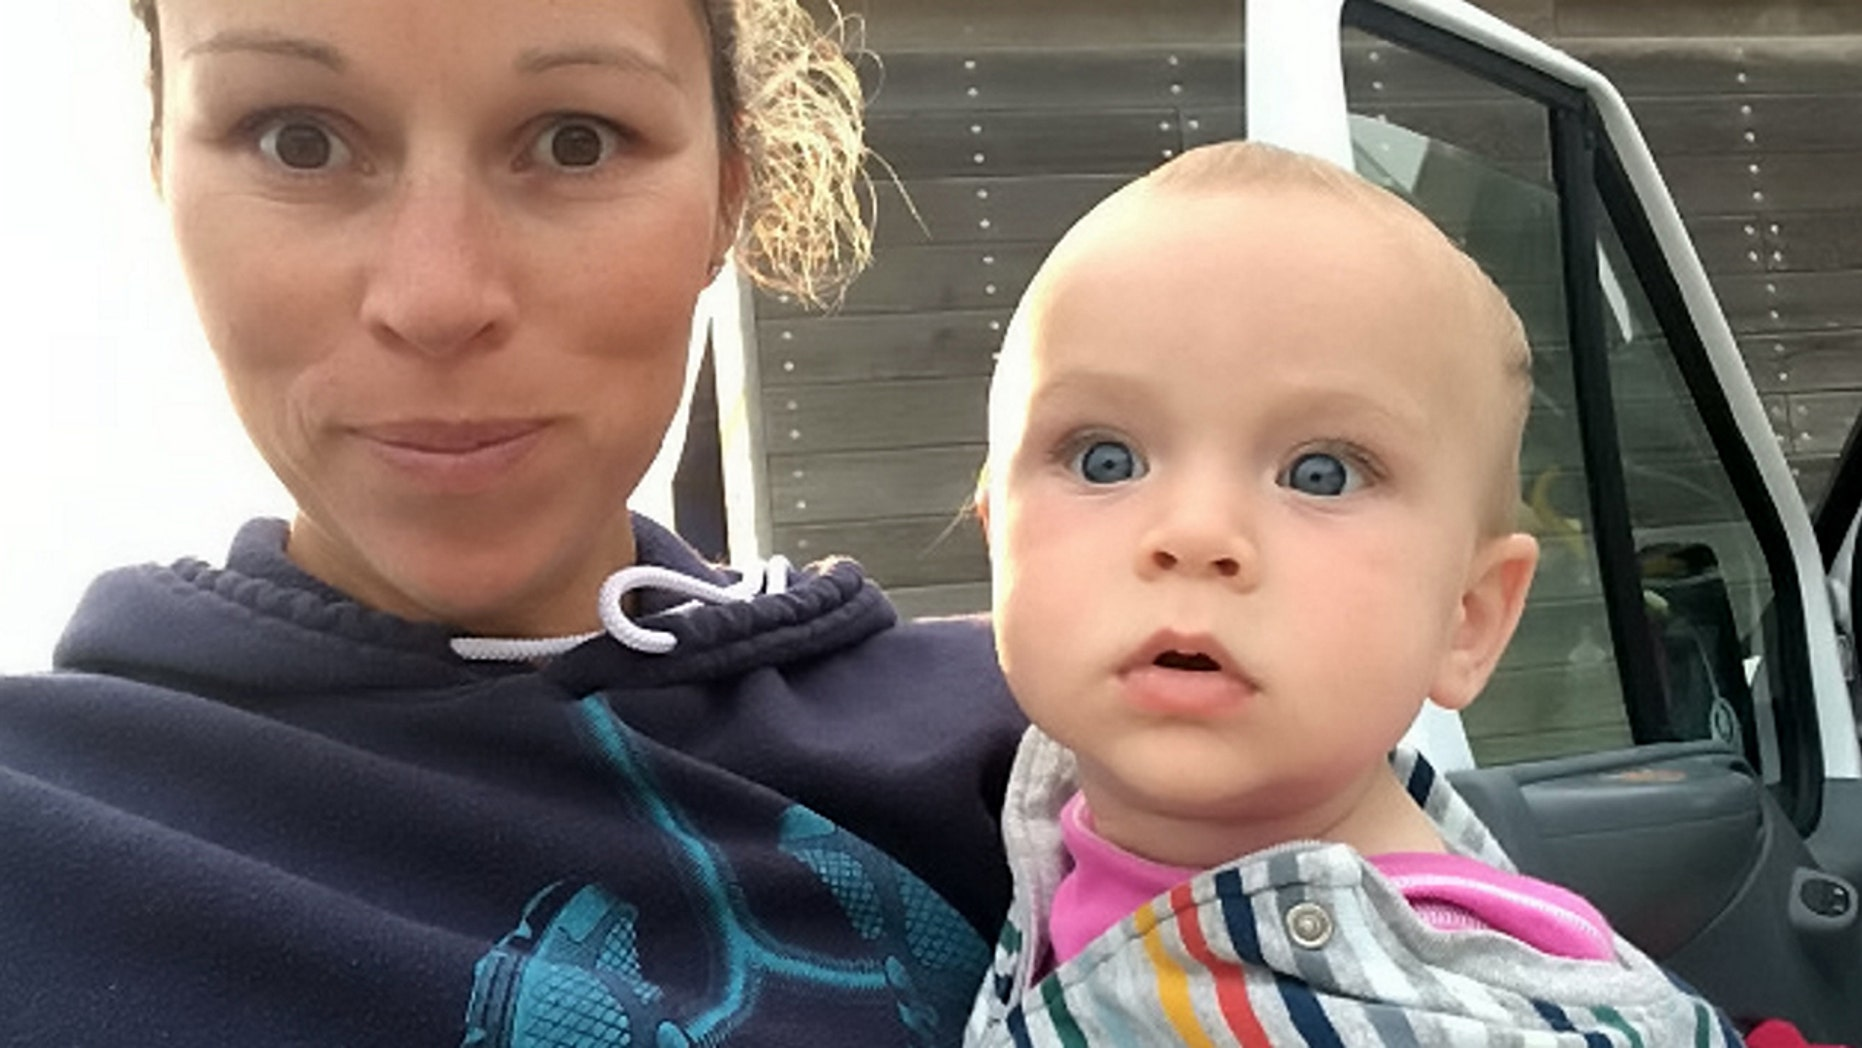 Kelly Edgson-Payne, 36, says she was left in tears after a crew member asked her to refrain from breastfeeding during takeoff, even though she claims she's never had an issue before.